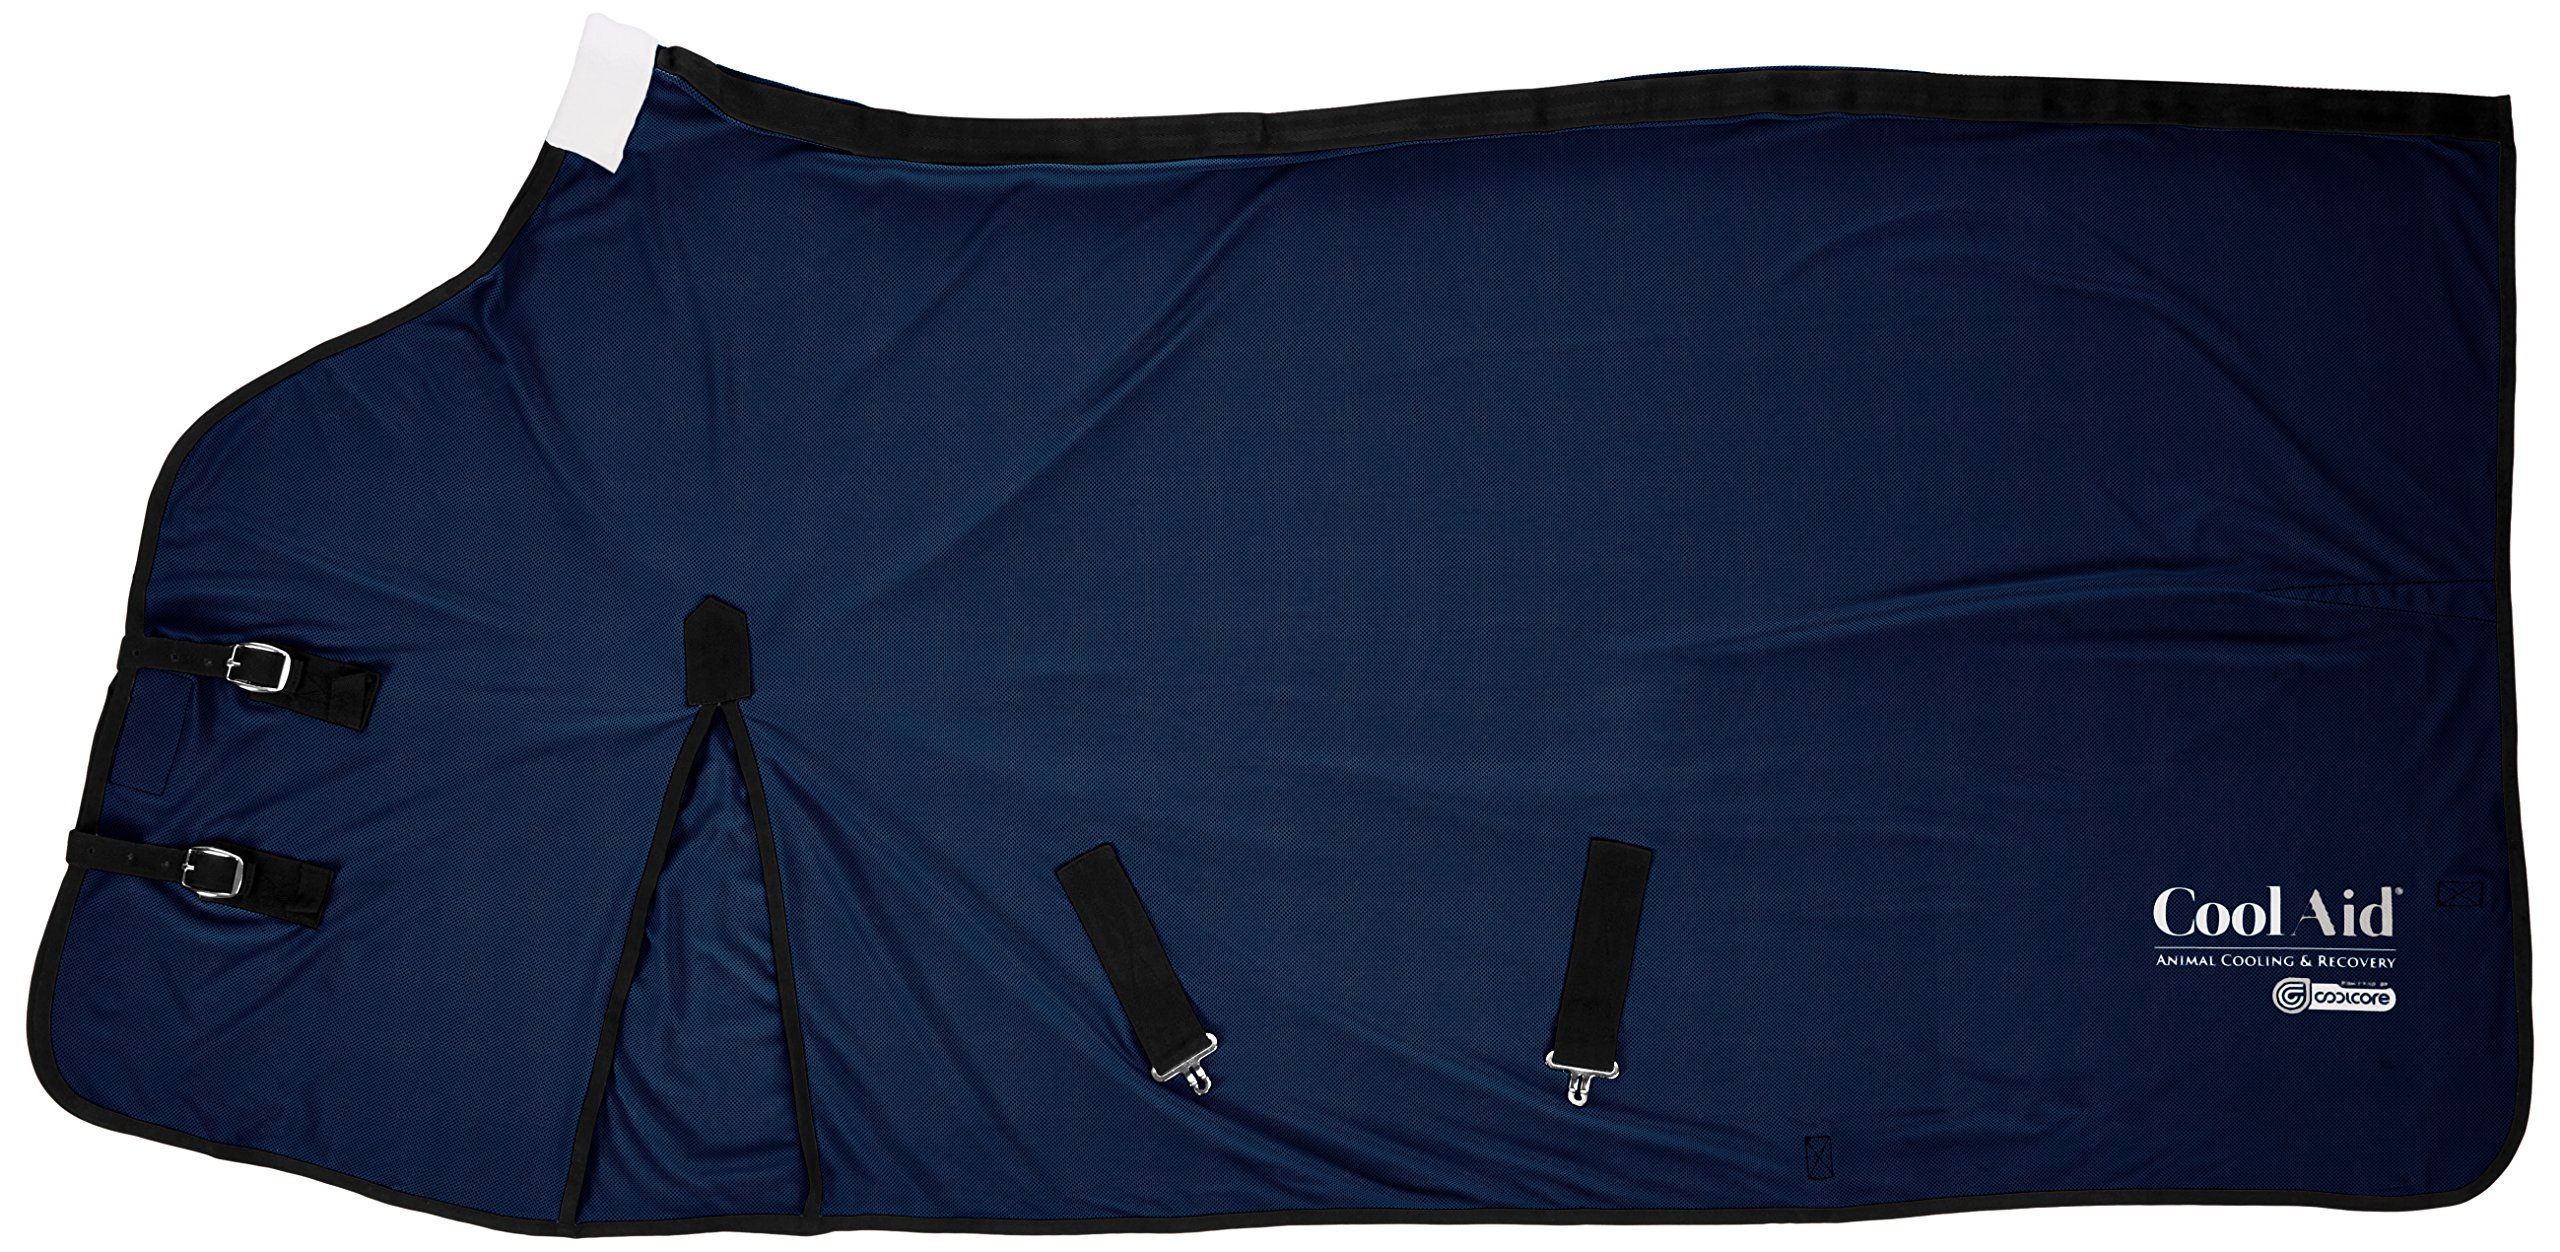 CoolAid Animal Cooling and Recovery Equine Cooling Blanket, Navy, Small